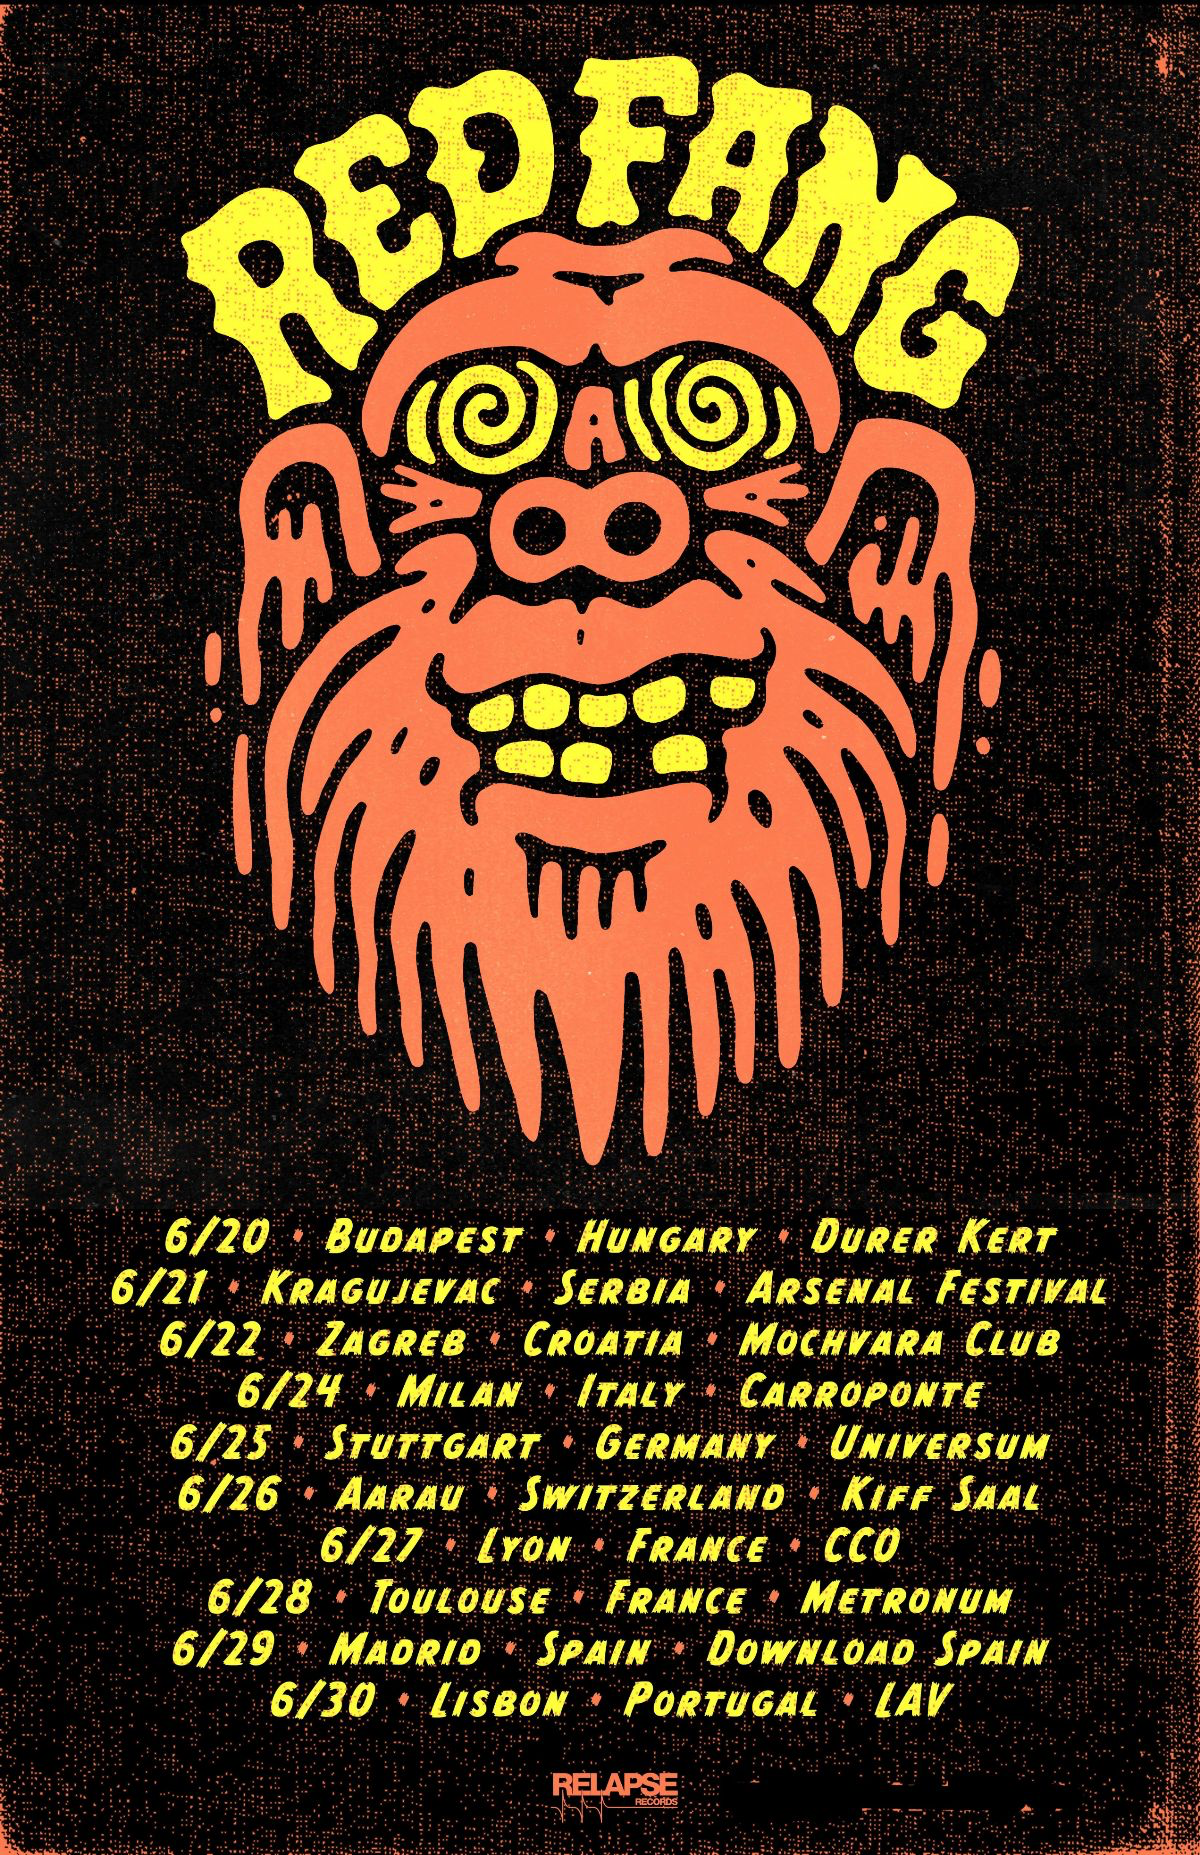 Red Fang Tour 2019